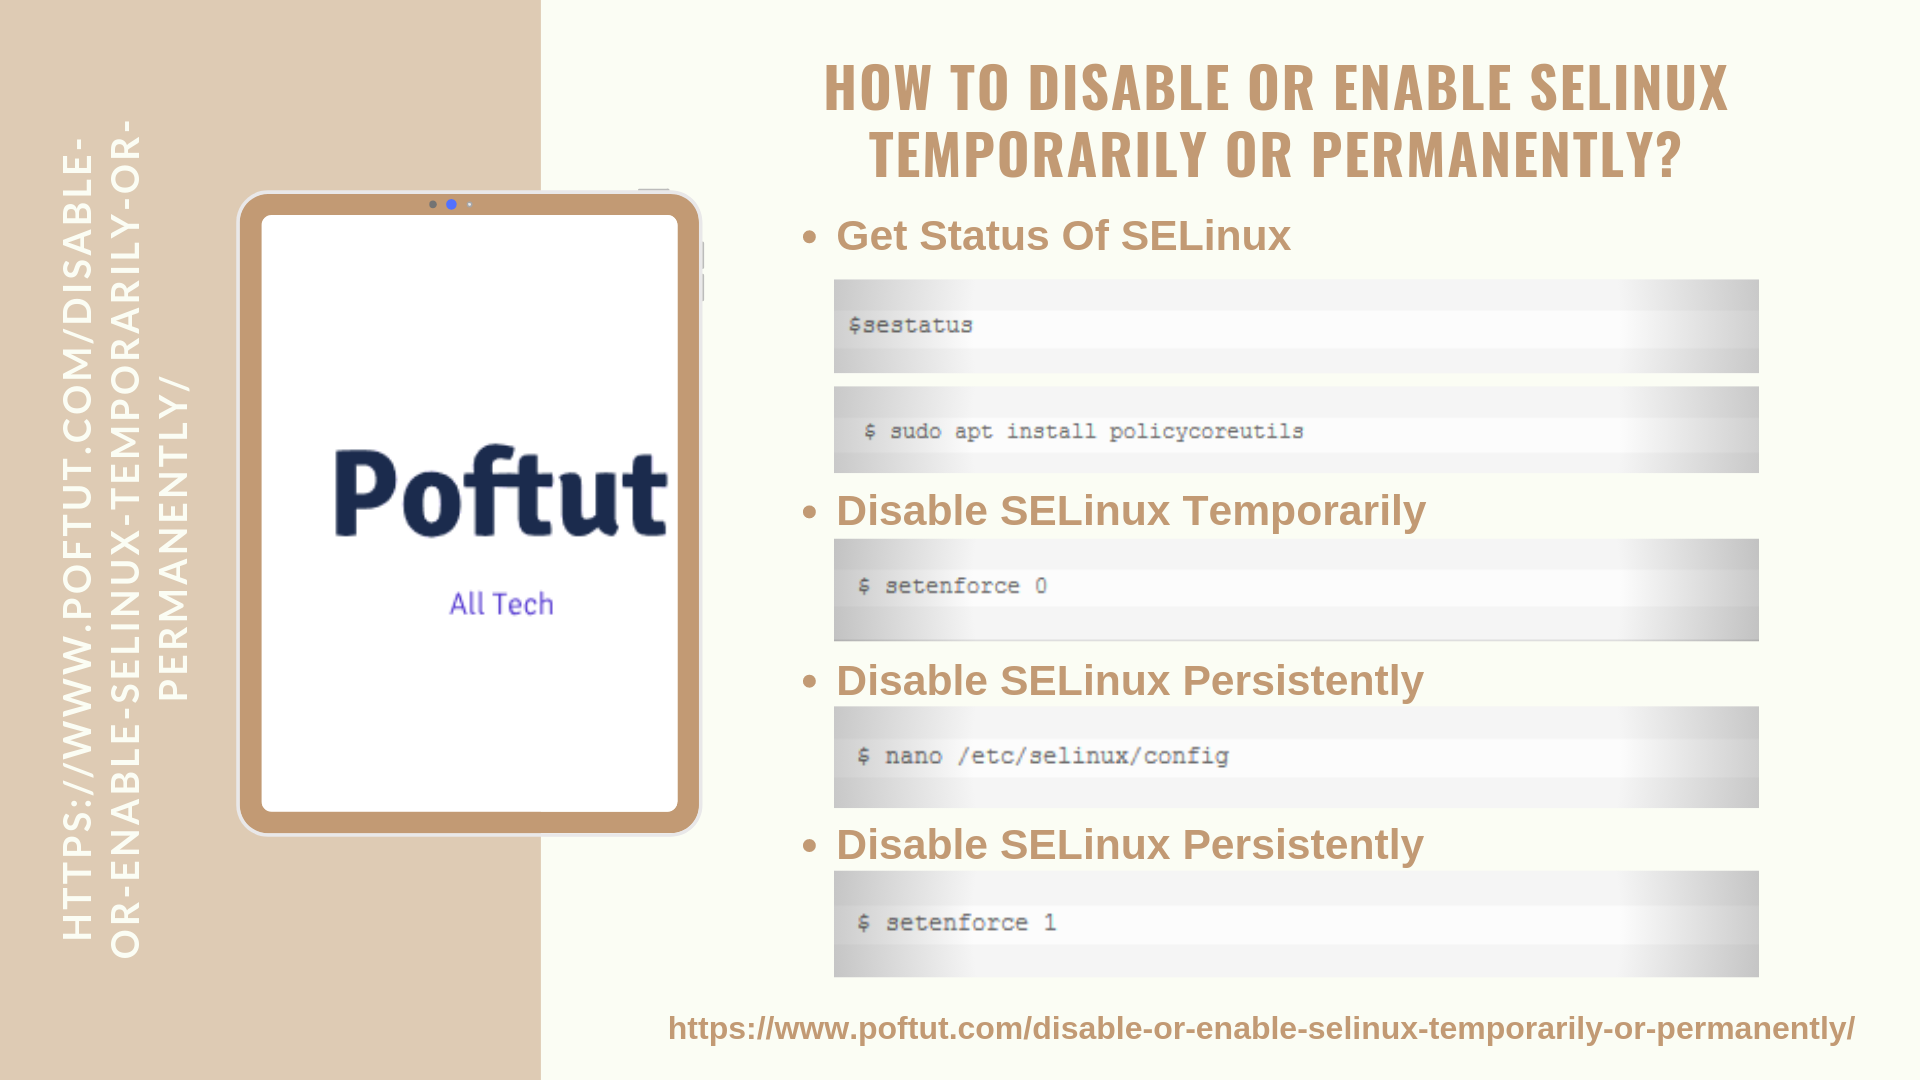 How To Disable or Enable Selinux Temporarily or Permanently